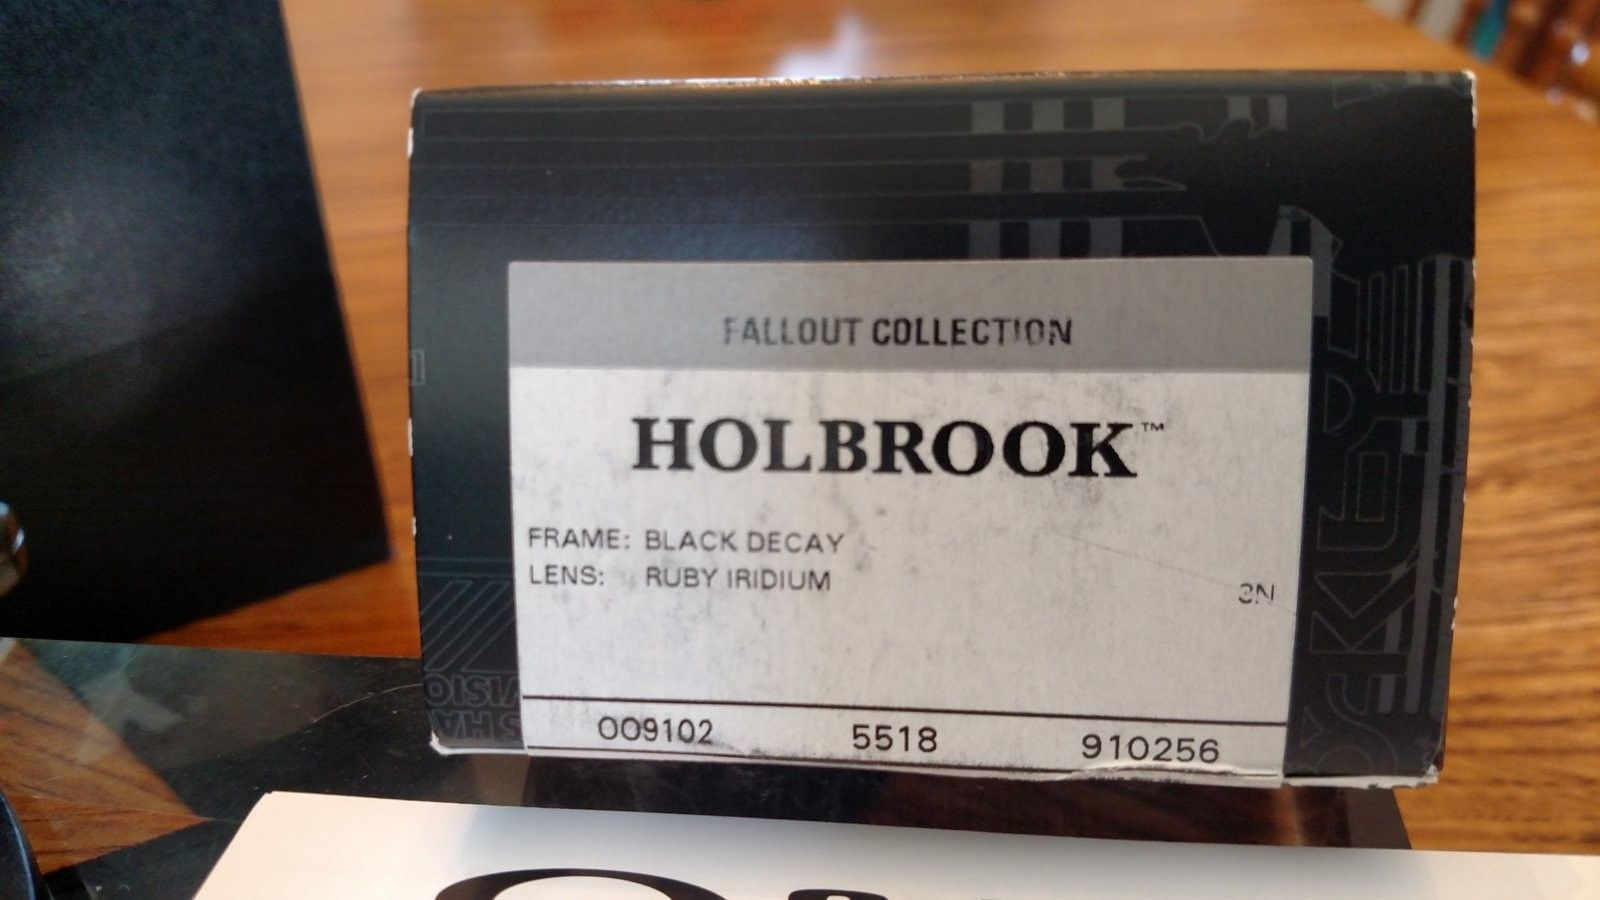 Holbrook Fallout Collection - Black Decay and Ruby Iridium....BNIB - IMG_20160610_093427751 (1).jpg